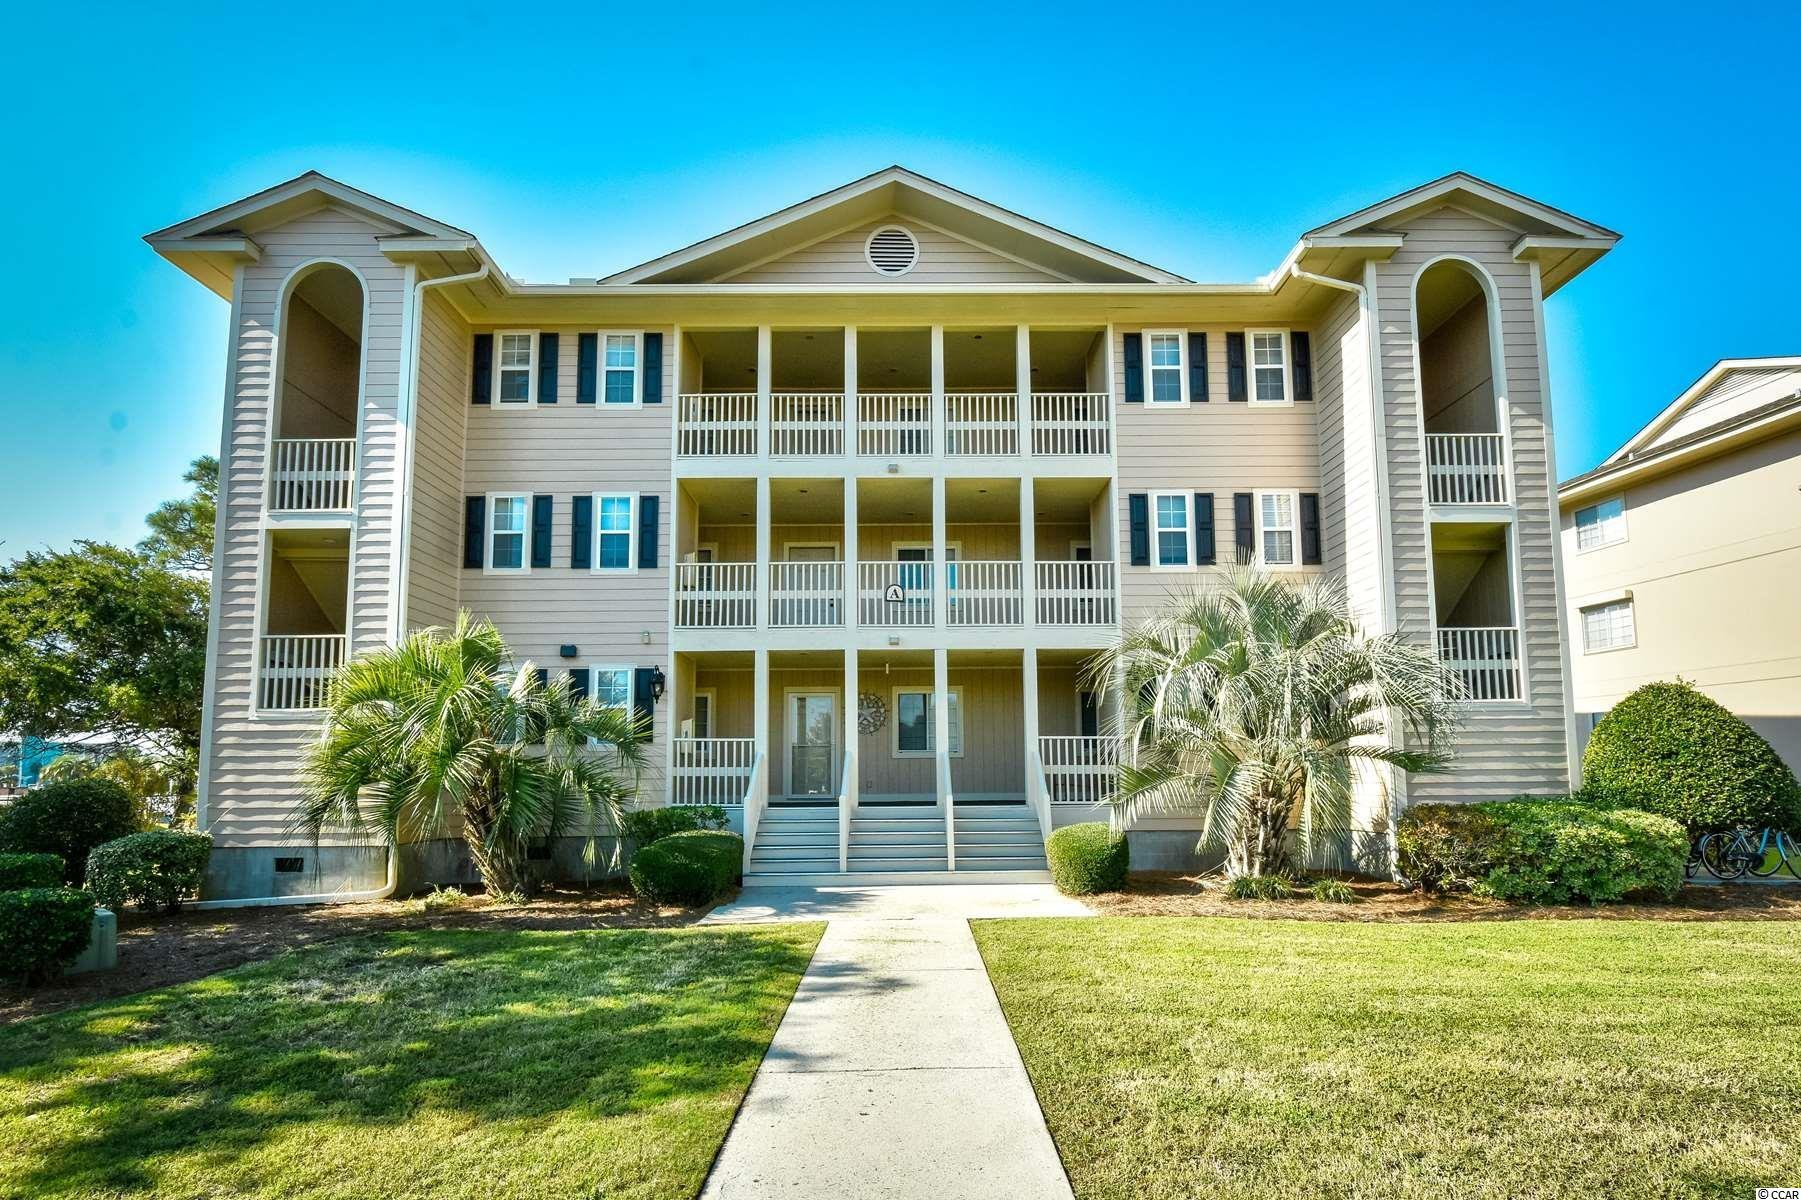 Don't miss this rare opportunity to own a 2 bedroom, 2 bath, FIRST FLOOR, end unit villa located in the desirable area of Cherry Grove, in the quiet community of Tilghman Shores.  Just a few blocks from the beach, this beautiful beachy furnished condo is perfect for full time living or a tranquil getaway.  Enjoy your morning coffee or afternoon cocktail on your screened in porch overlooking the pond.  The EZE Breeze windows on the porch will allow for extended use of this roomy living area.  There's an additional large storage closet  located right across from your front door that is available for beach chairs, etc. The community has a large pool, hot tub and grilling area which is located adjacent to the condo.  This prime location is within walking distance to a grocery store, restaurants, bars and of course, the beach.  Hurry, this move in ready beauty won't last.